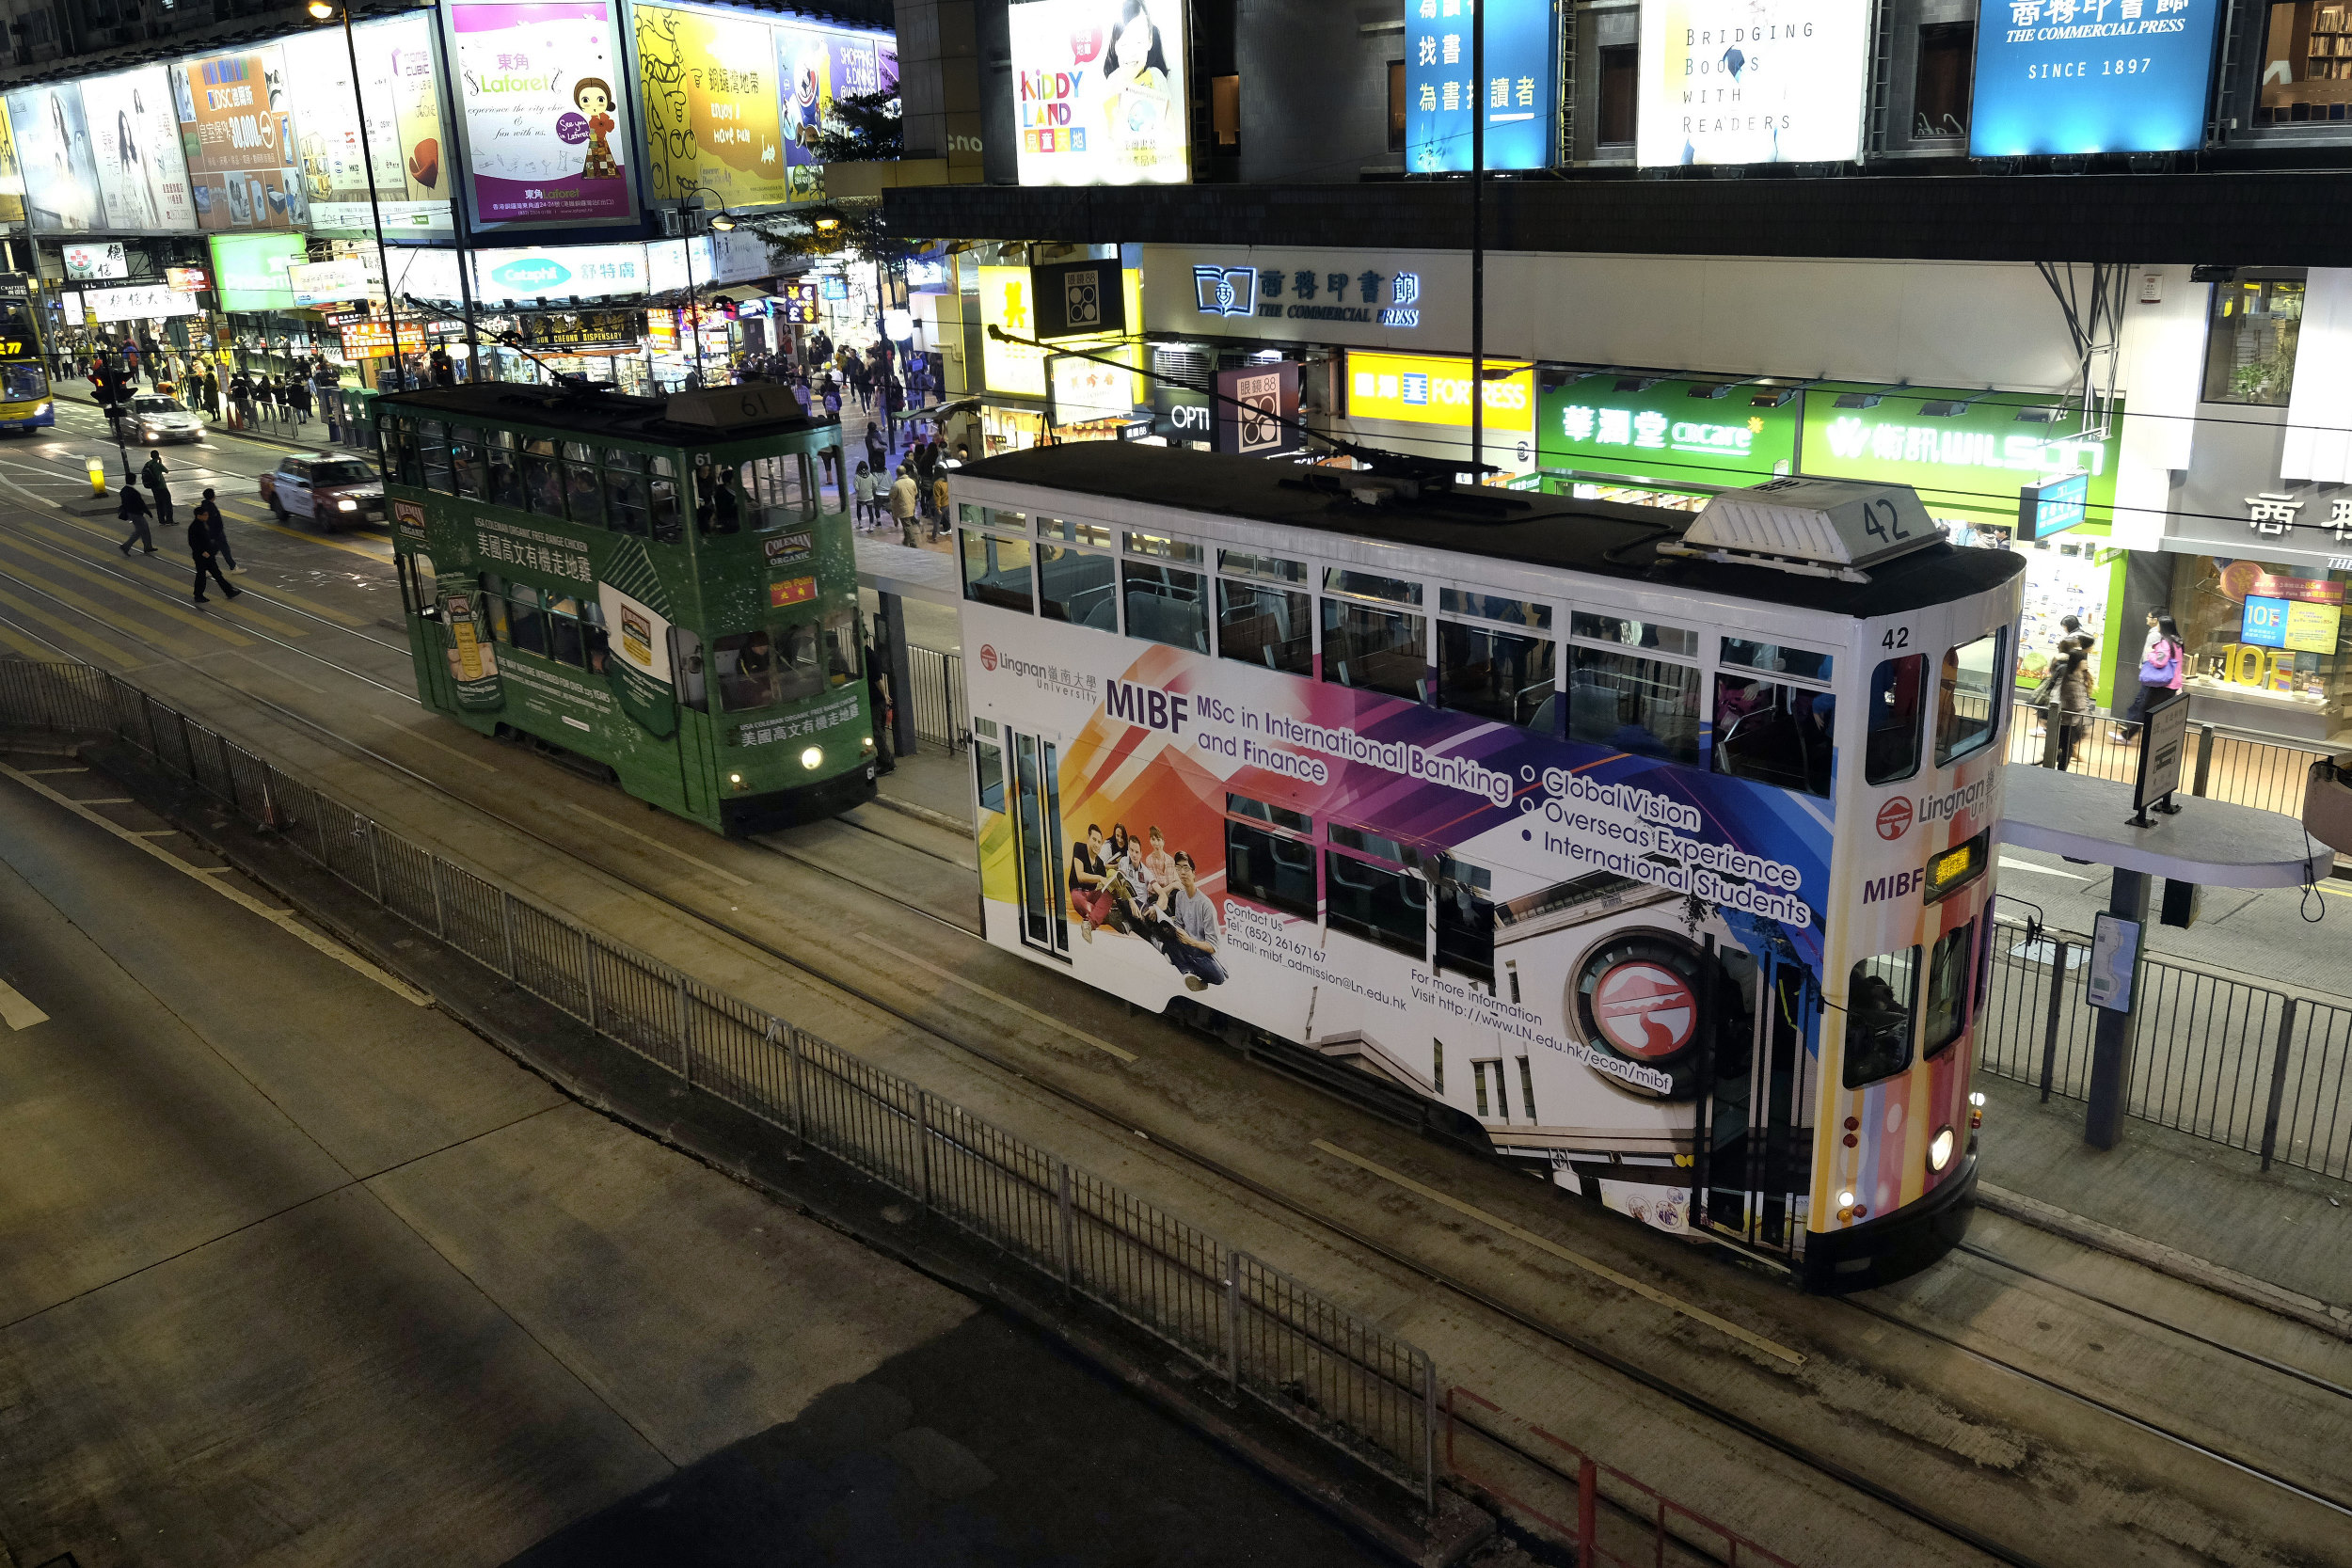 Hong Kong Causeway Bay Straatbeeld Dubbeldeks Trams